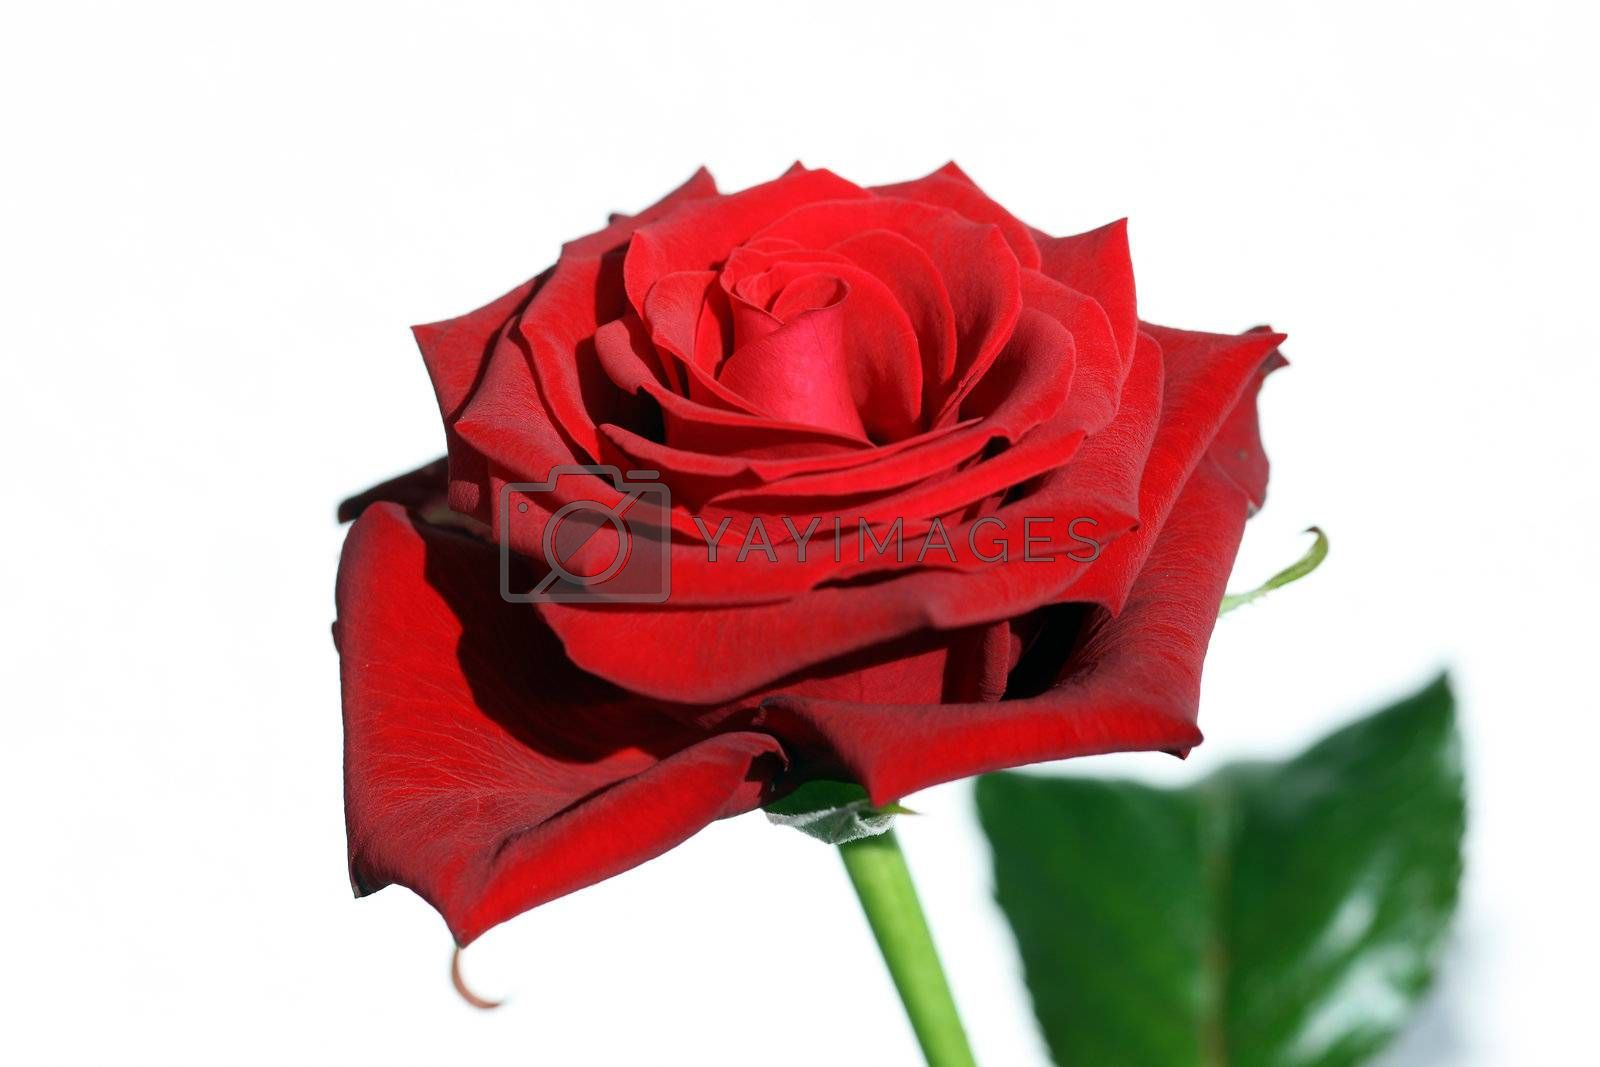 Royalty free image of Red Rose by monner